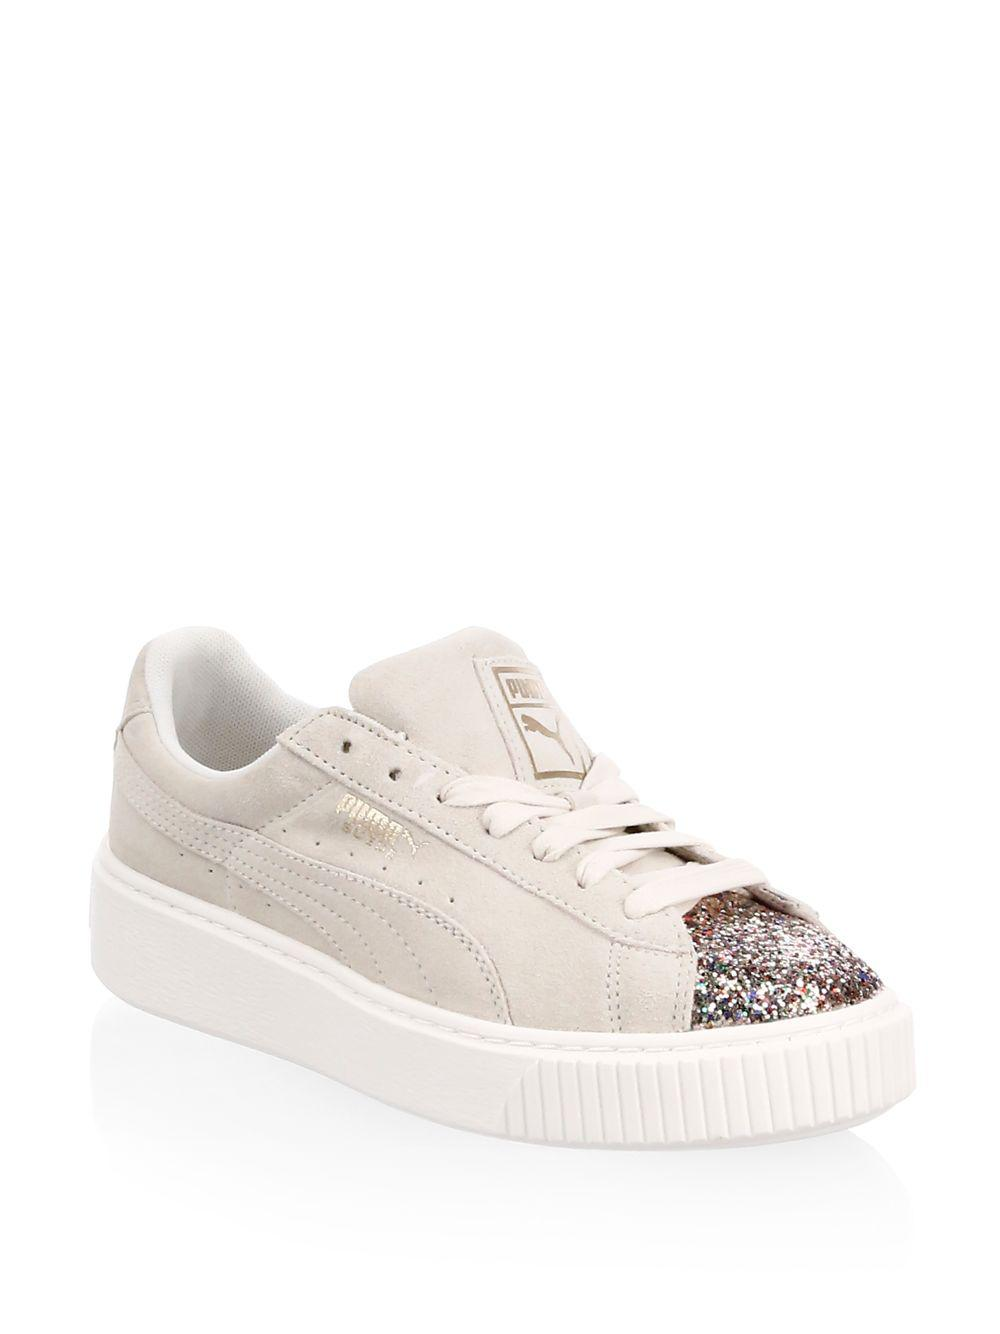 2ed0c6230af1 Lyst - Puma Fierce Rope Sneakers in White - Save 41.0%